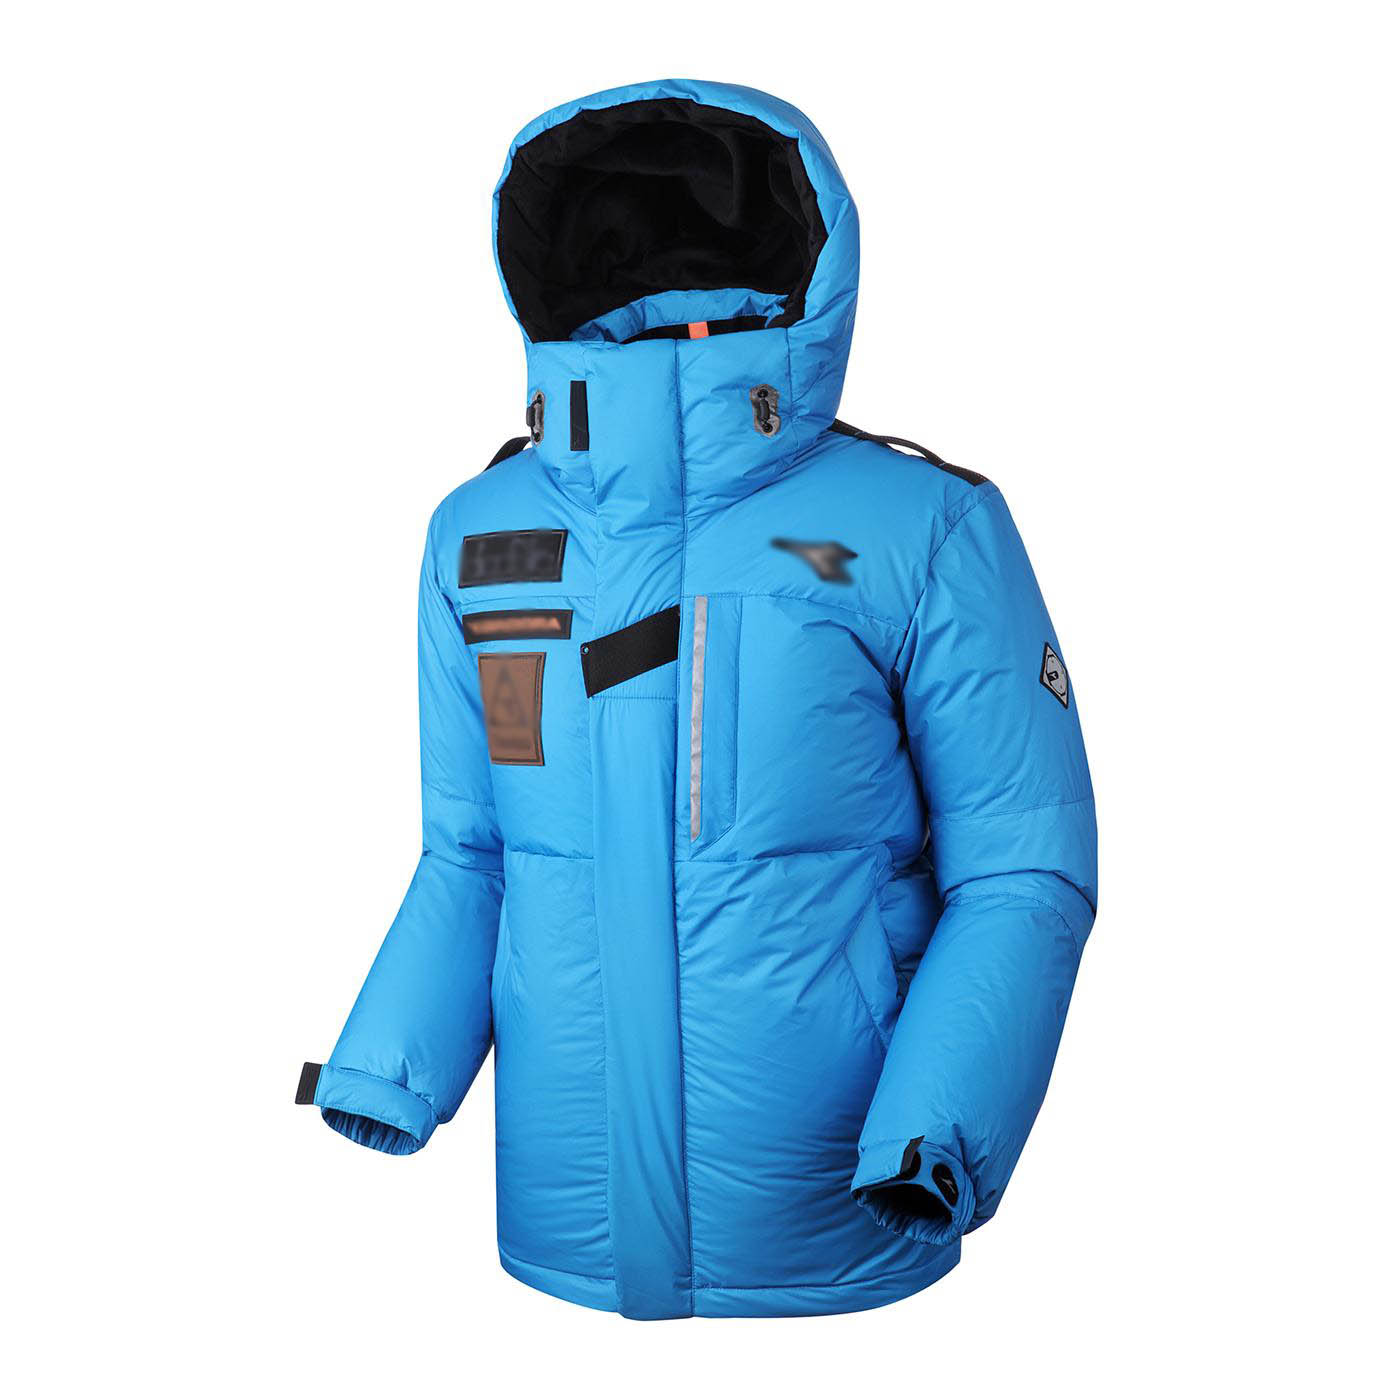 [The goods stop production and no stock]South Korean men's down jacket outdoor leisure, windproof, rainproof and super-warm men's velvet polar suit